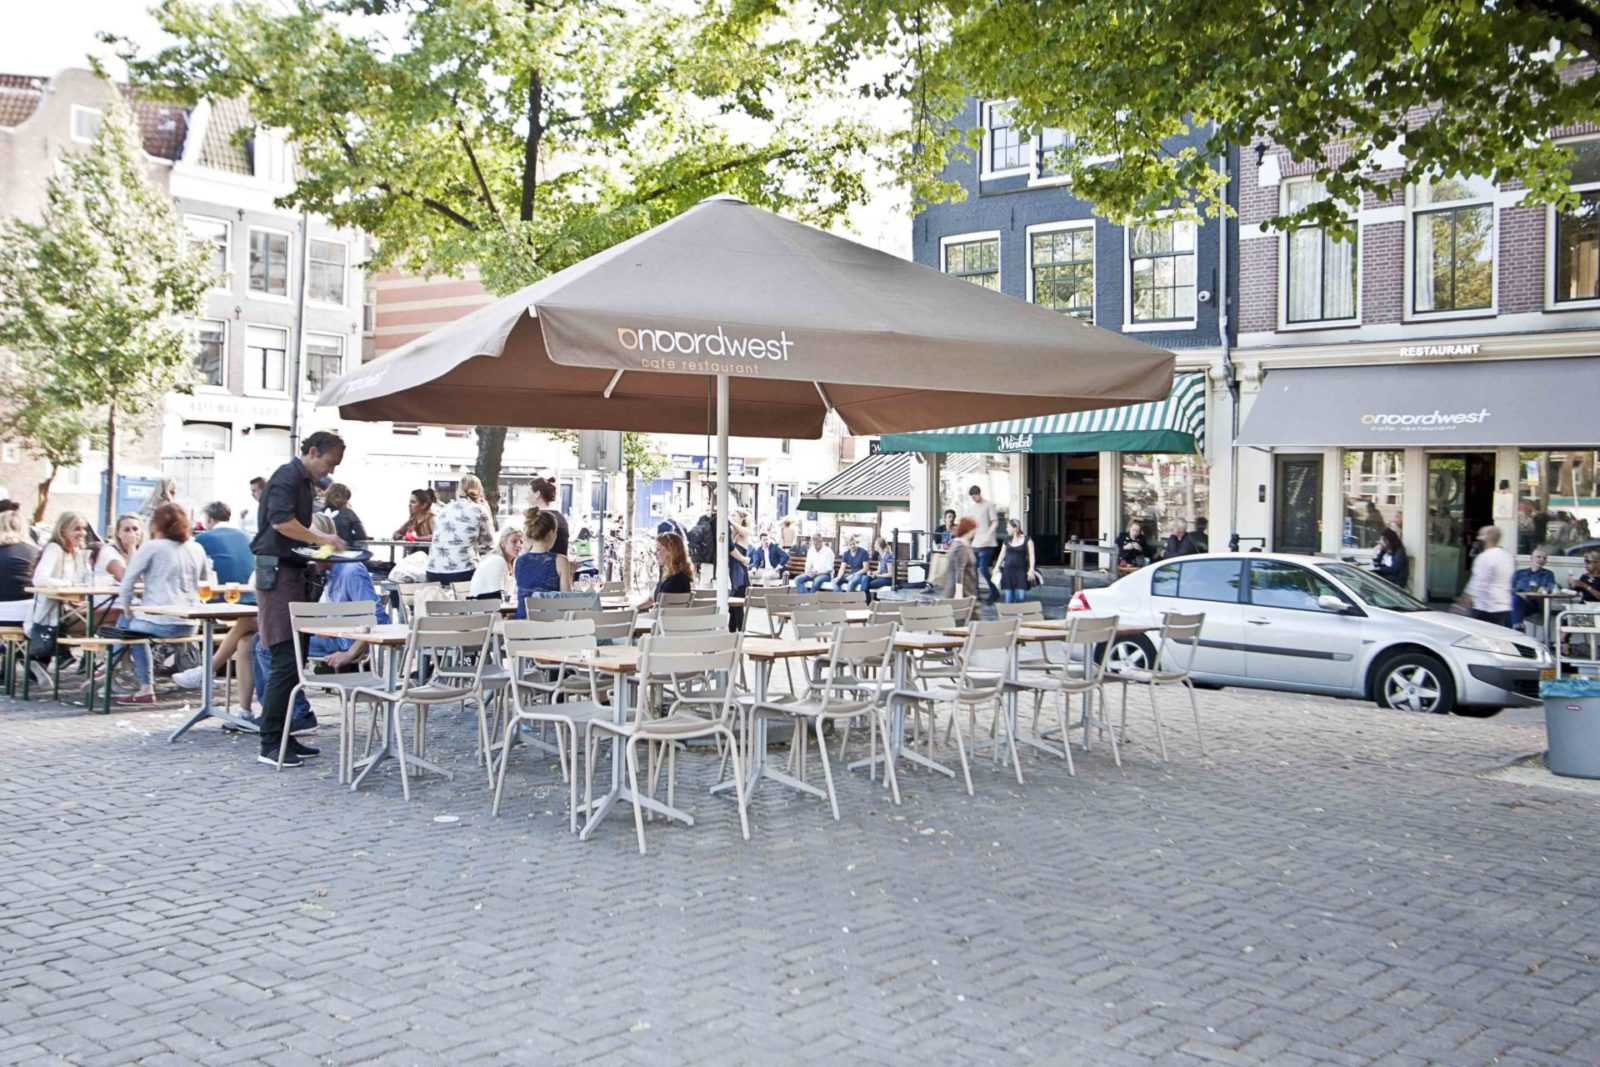 Couverts, Restaurant Noordwest, Amsterdam